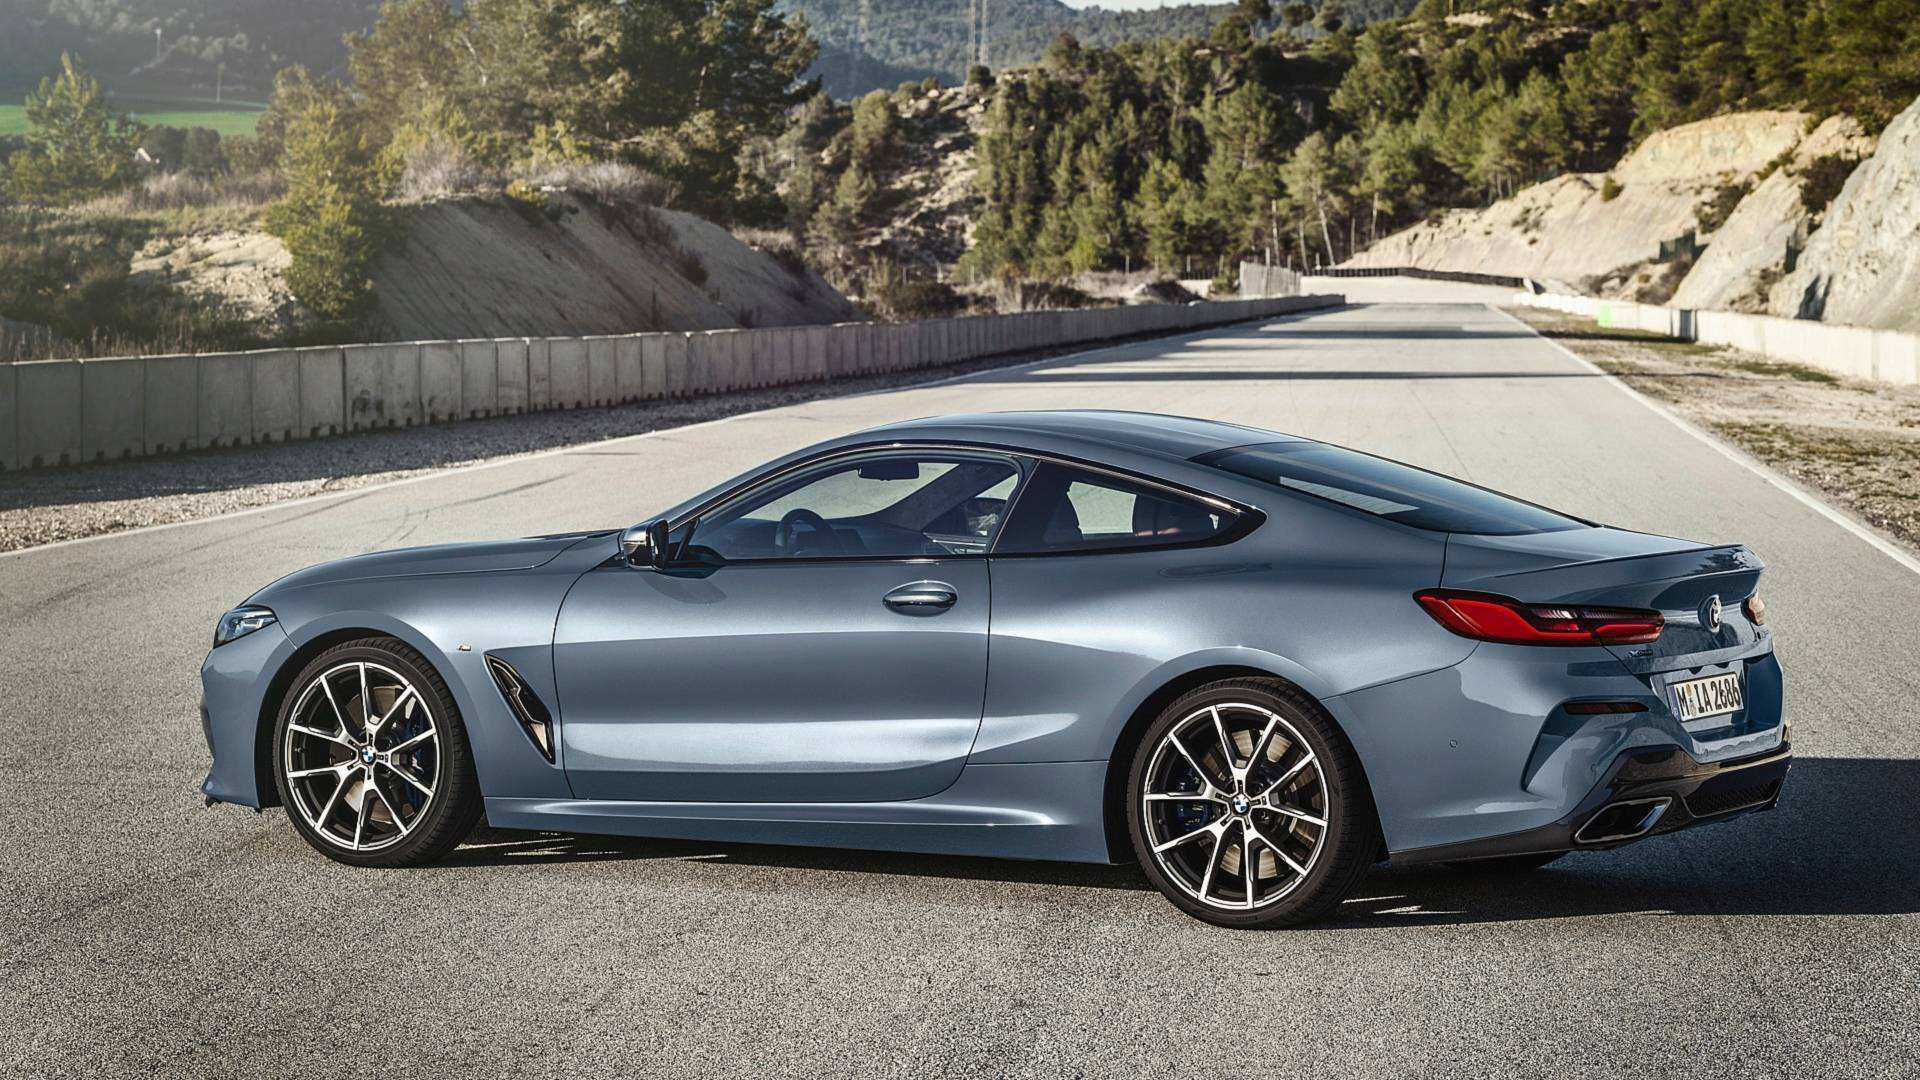 47 The 2020 Bmw 850I Price Design And Review